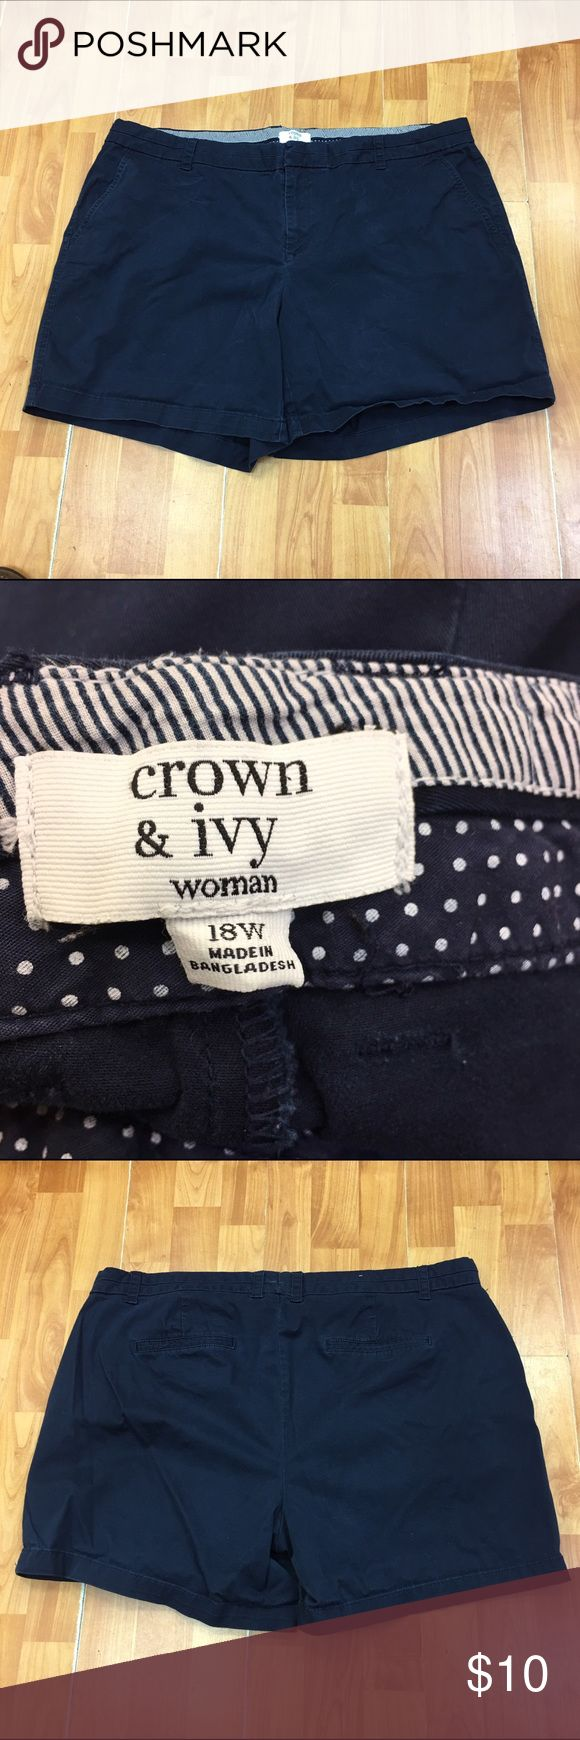 Crown & Ivy Woman Navy Shorts 18W Crown & Ivy Woman Navy Shorts 18W  Great pair of shorts.  Belt loops, four pockets.  Good used condition.  Wash wear and wear in stride but not worn out. Crown & Ivy Shorts